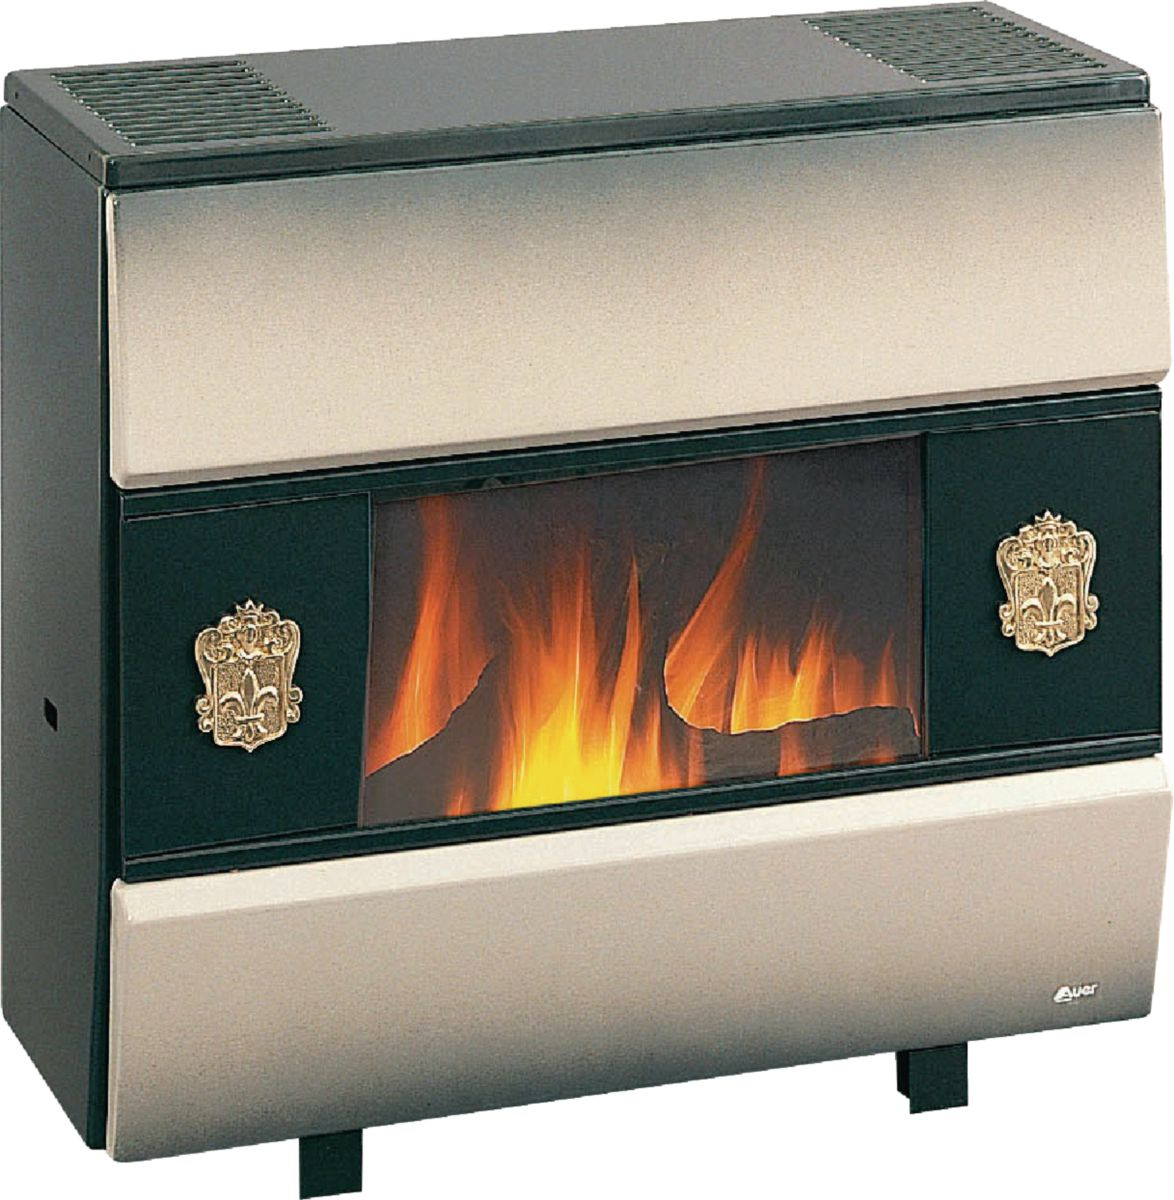 chaudiere gaz evacuation cheminee cool tarif duune chaudire gaz with chaudiere gaz evacuation. Black Bedroom Furniture Sets. Home Design Ideas